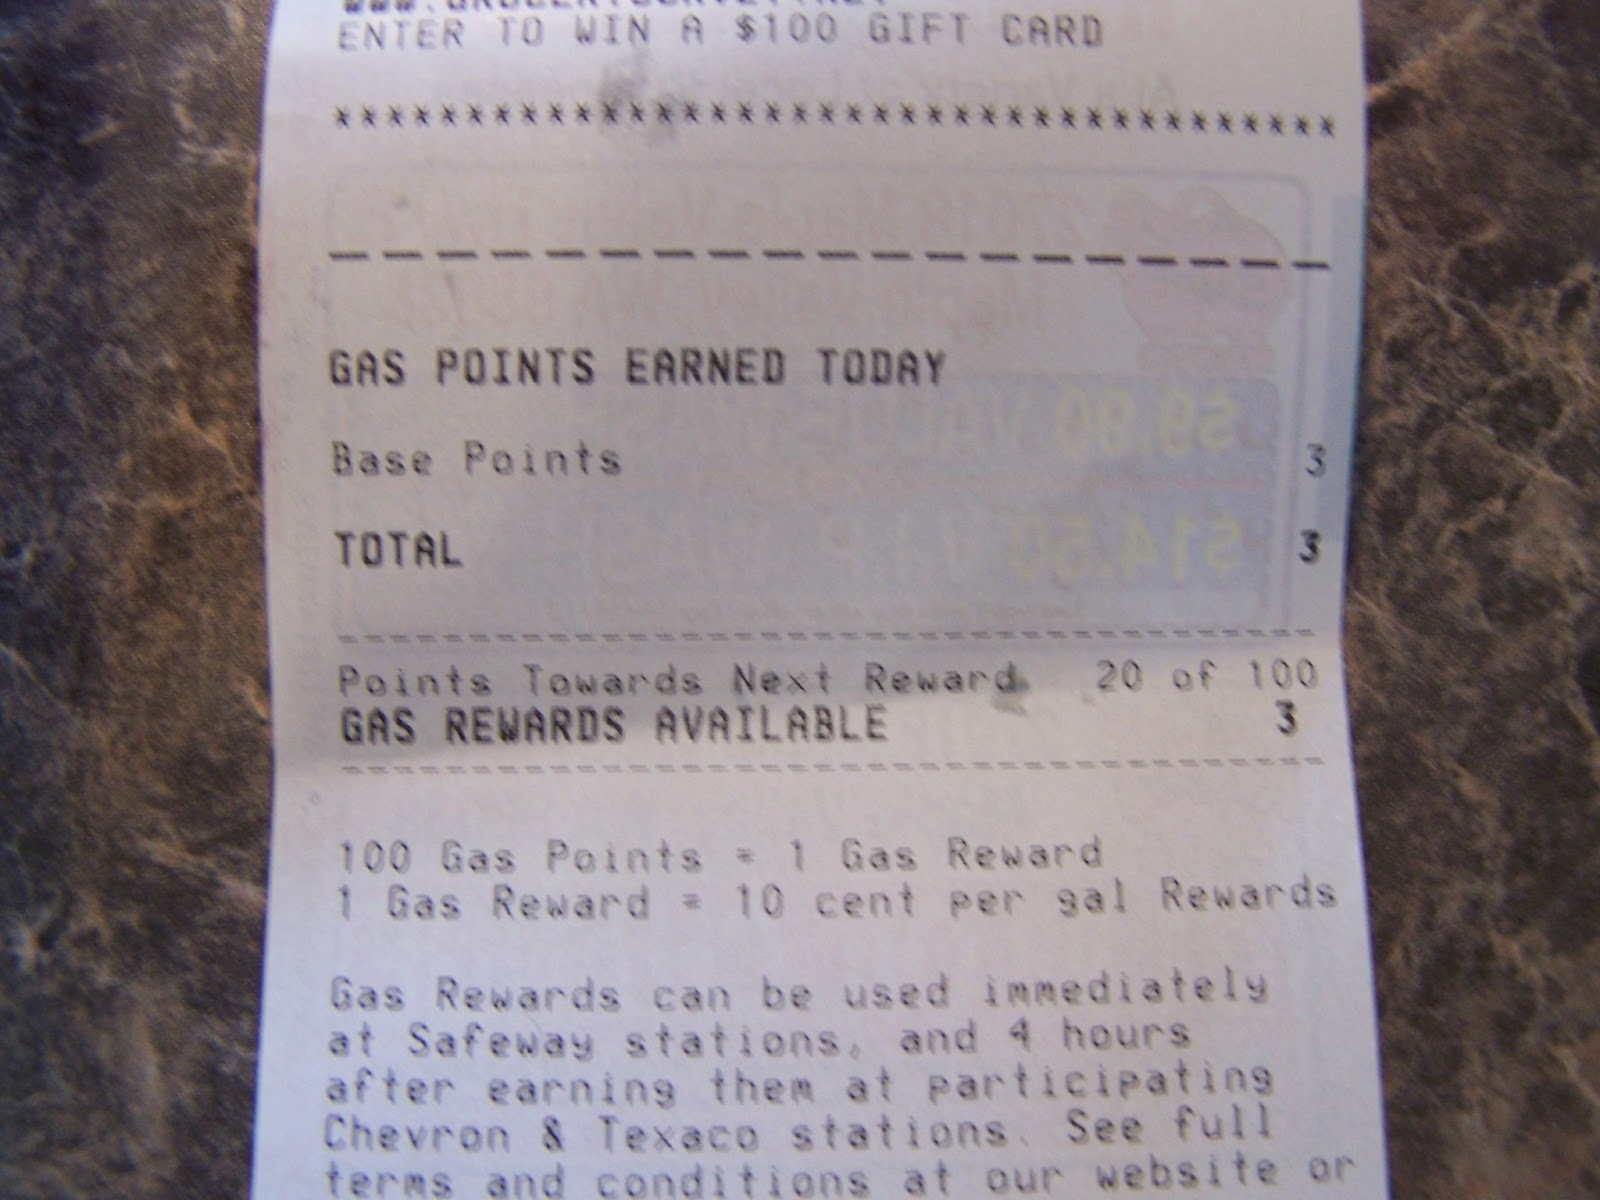 Did you know you can use your Safeway Gas Reward Points at